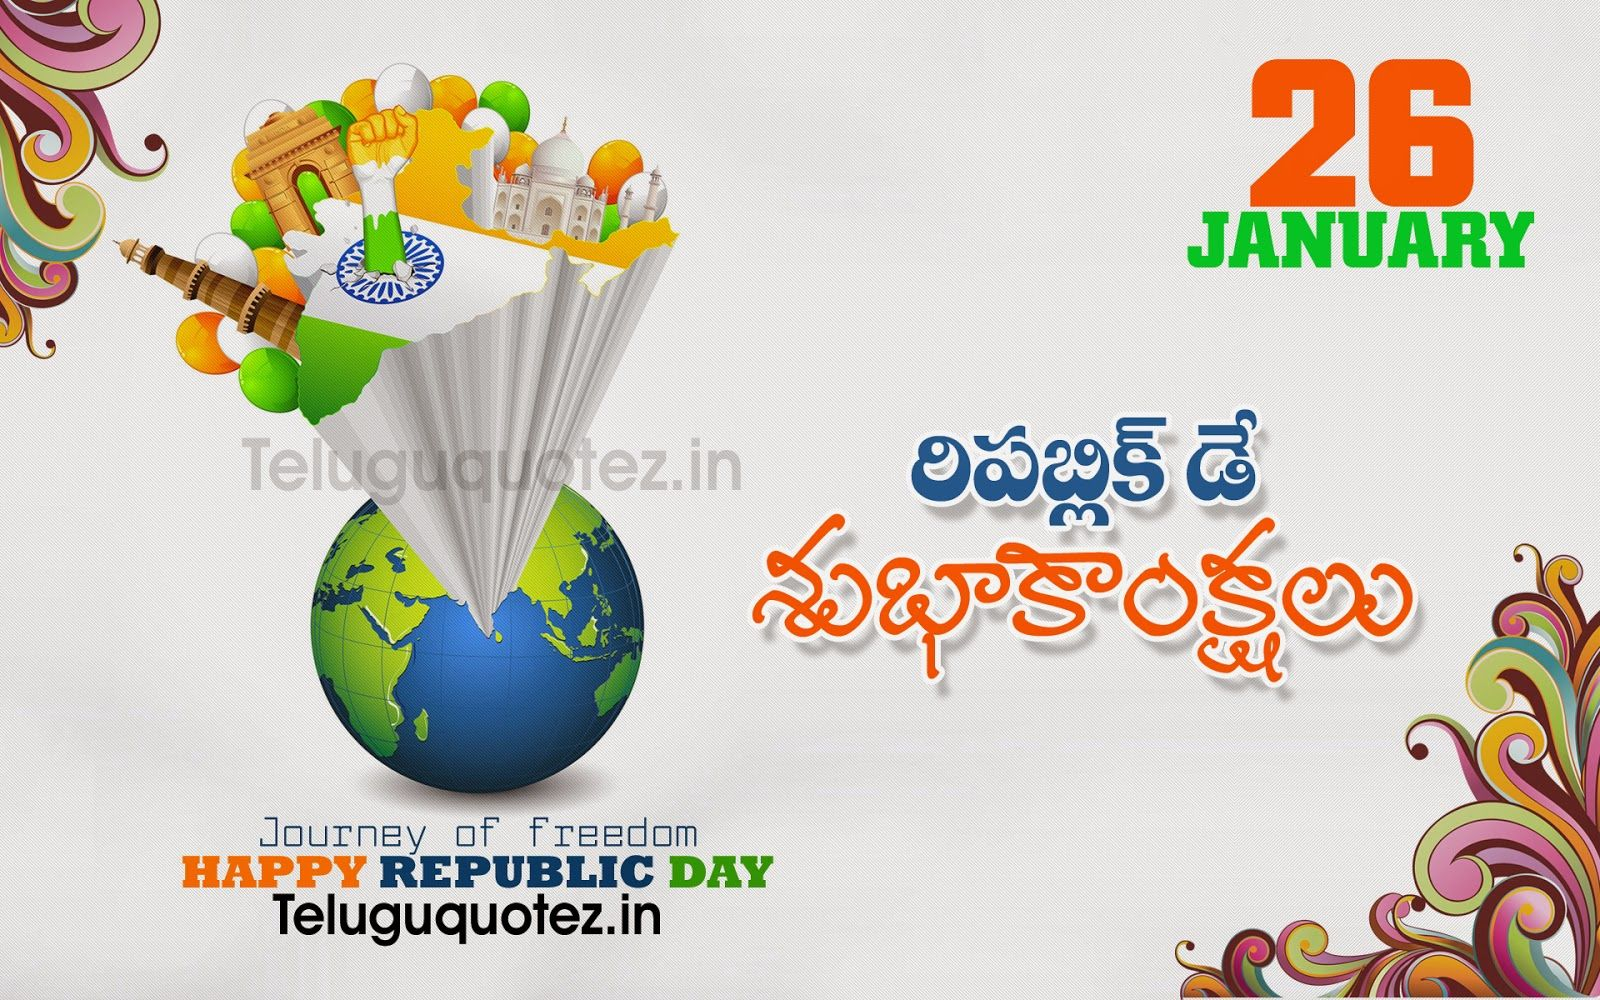 Naveengfx Com Republic Day Telugu Greeting Republic Day Speech